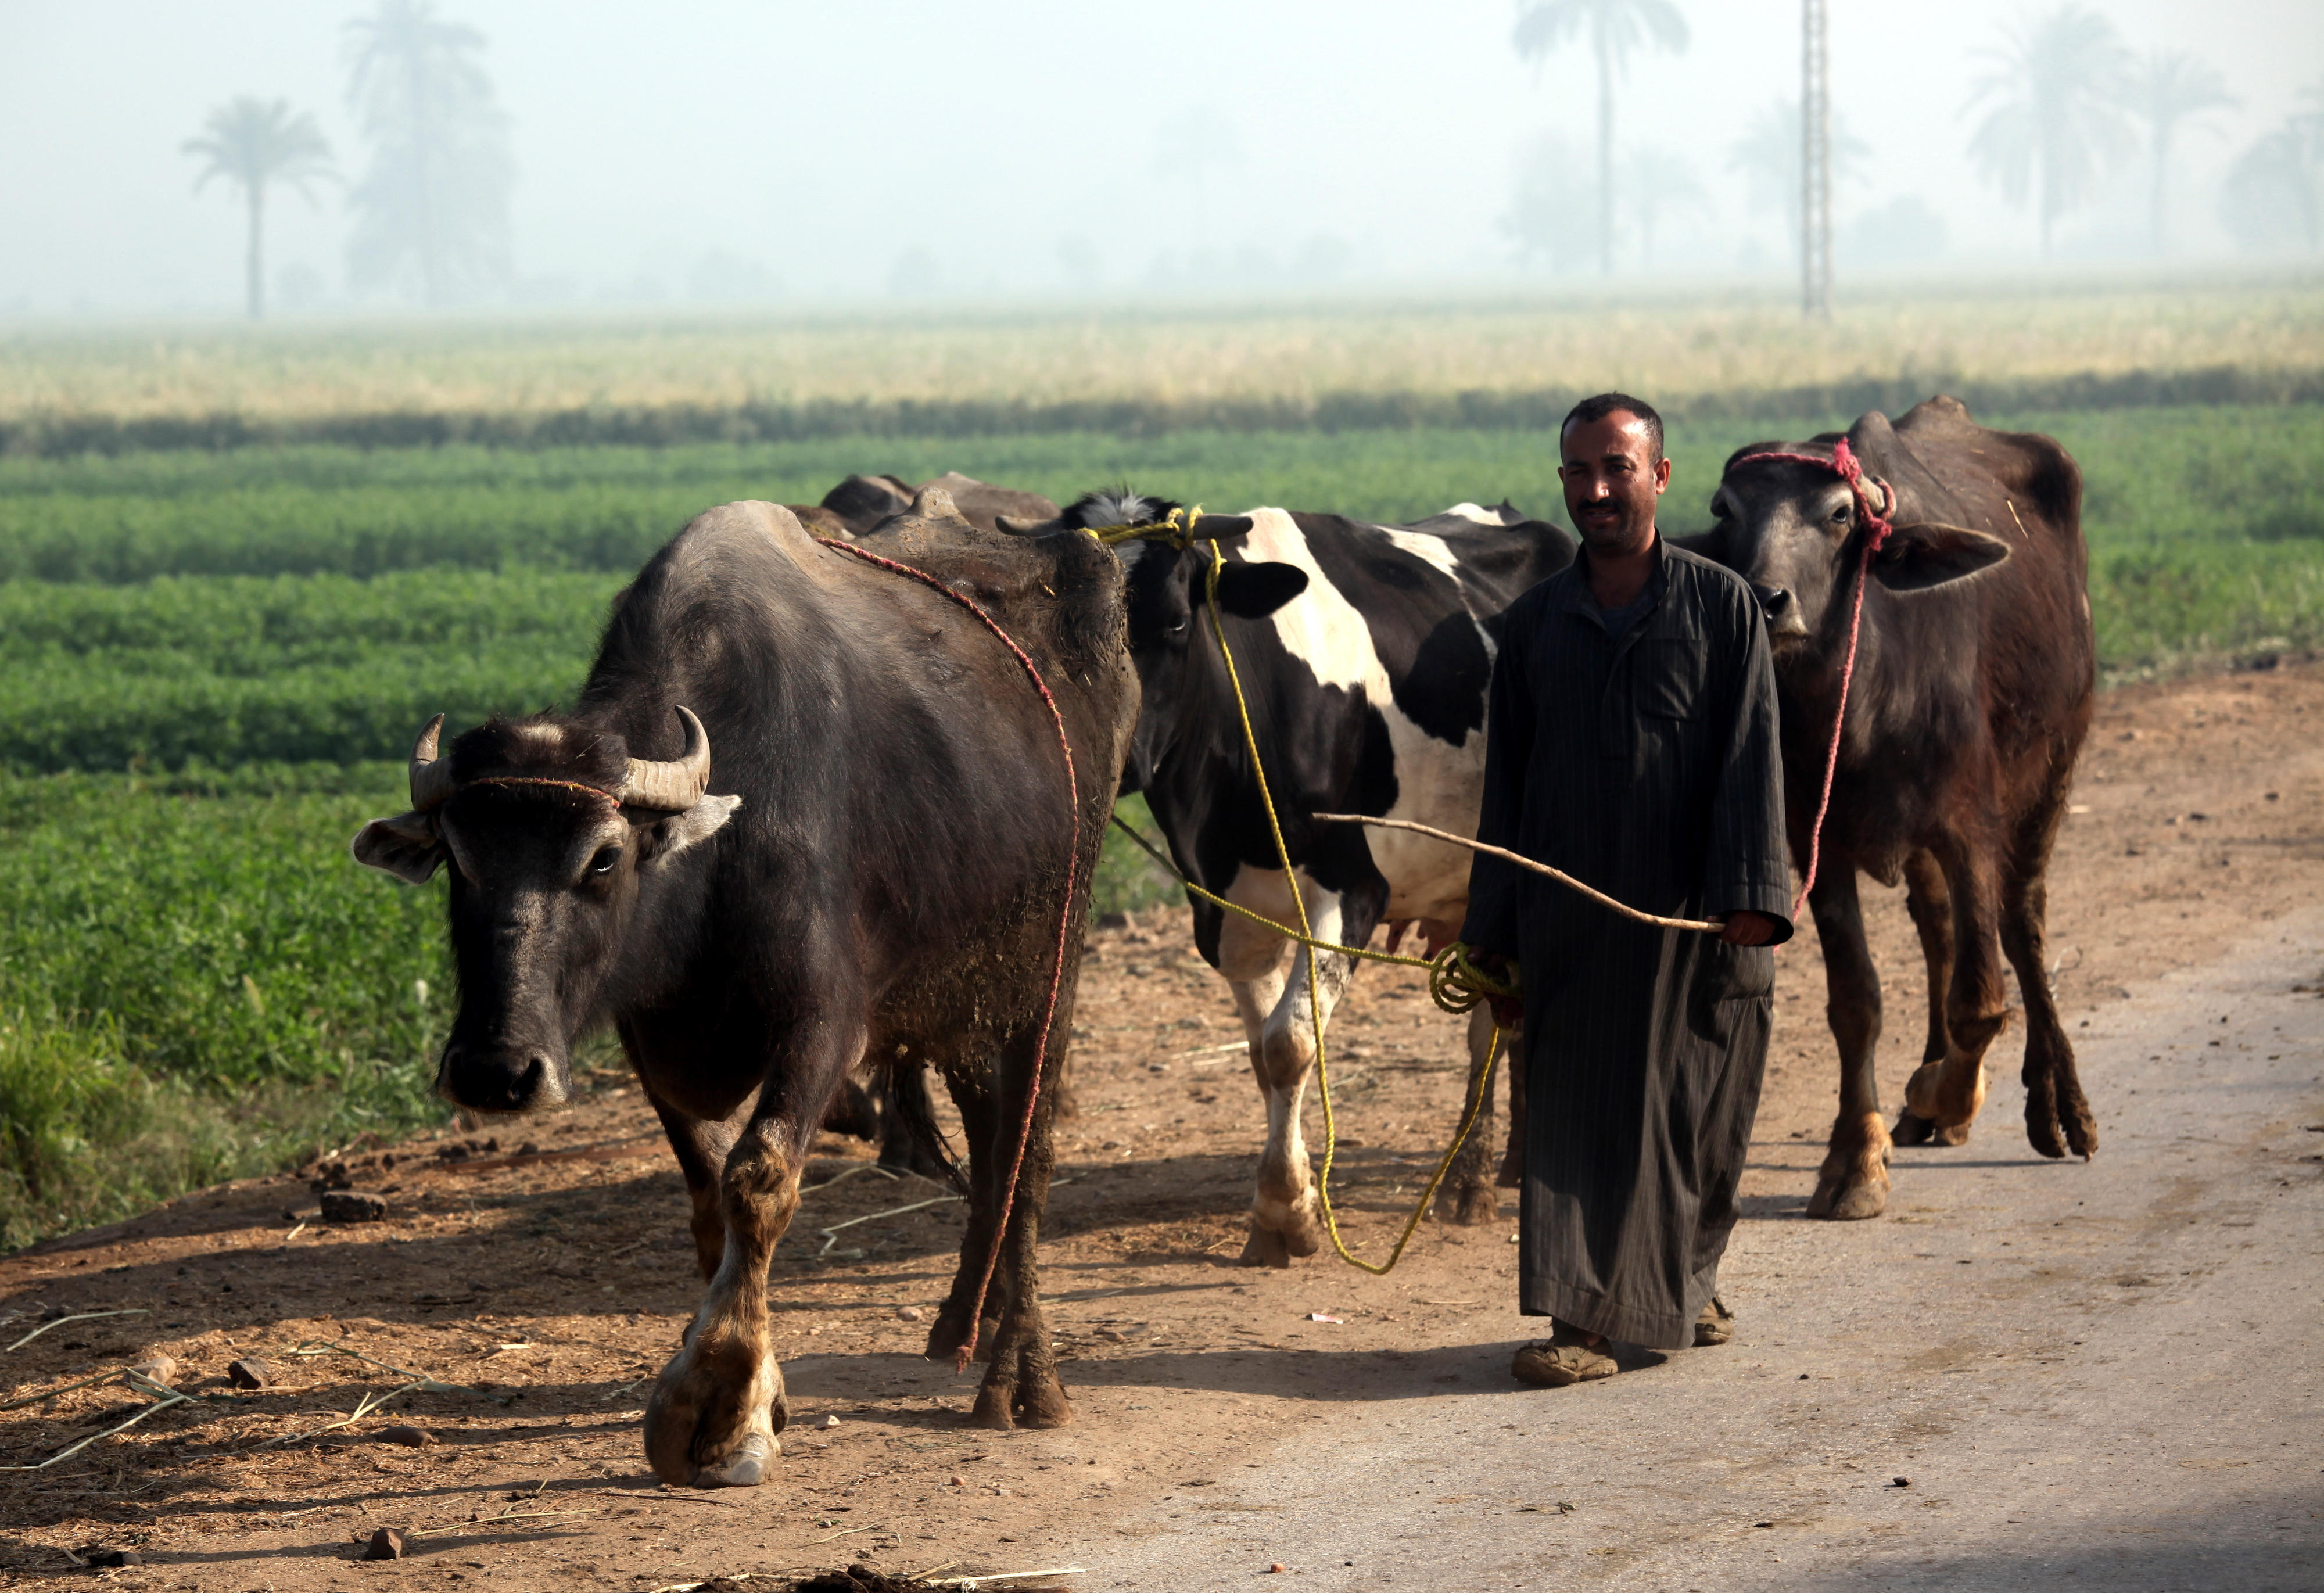 A farmer in the El Minya region of Egypt with two water buffaloes and a dairy cow